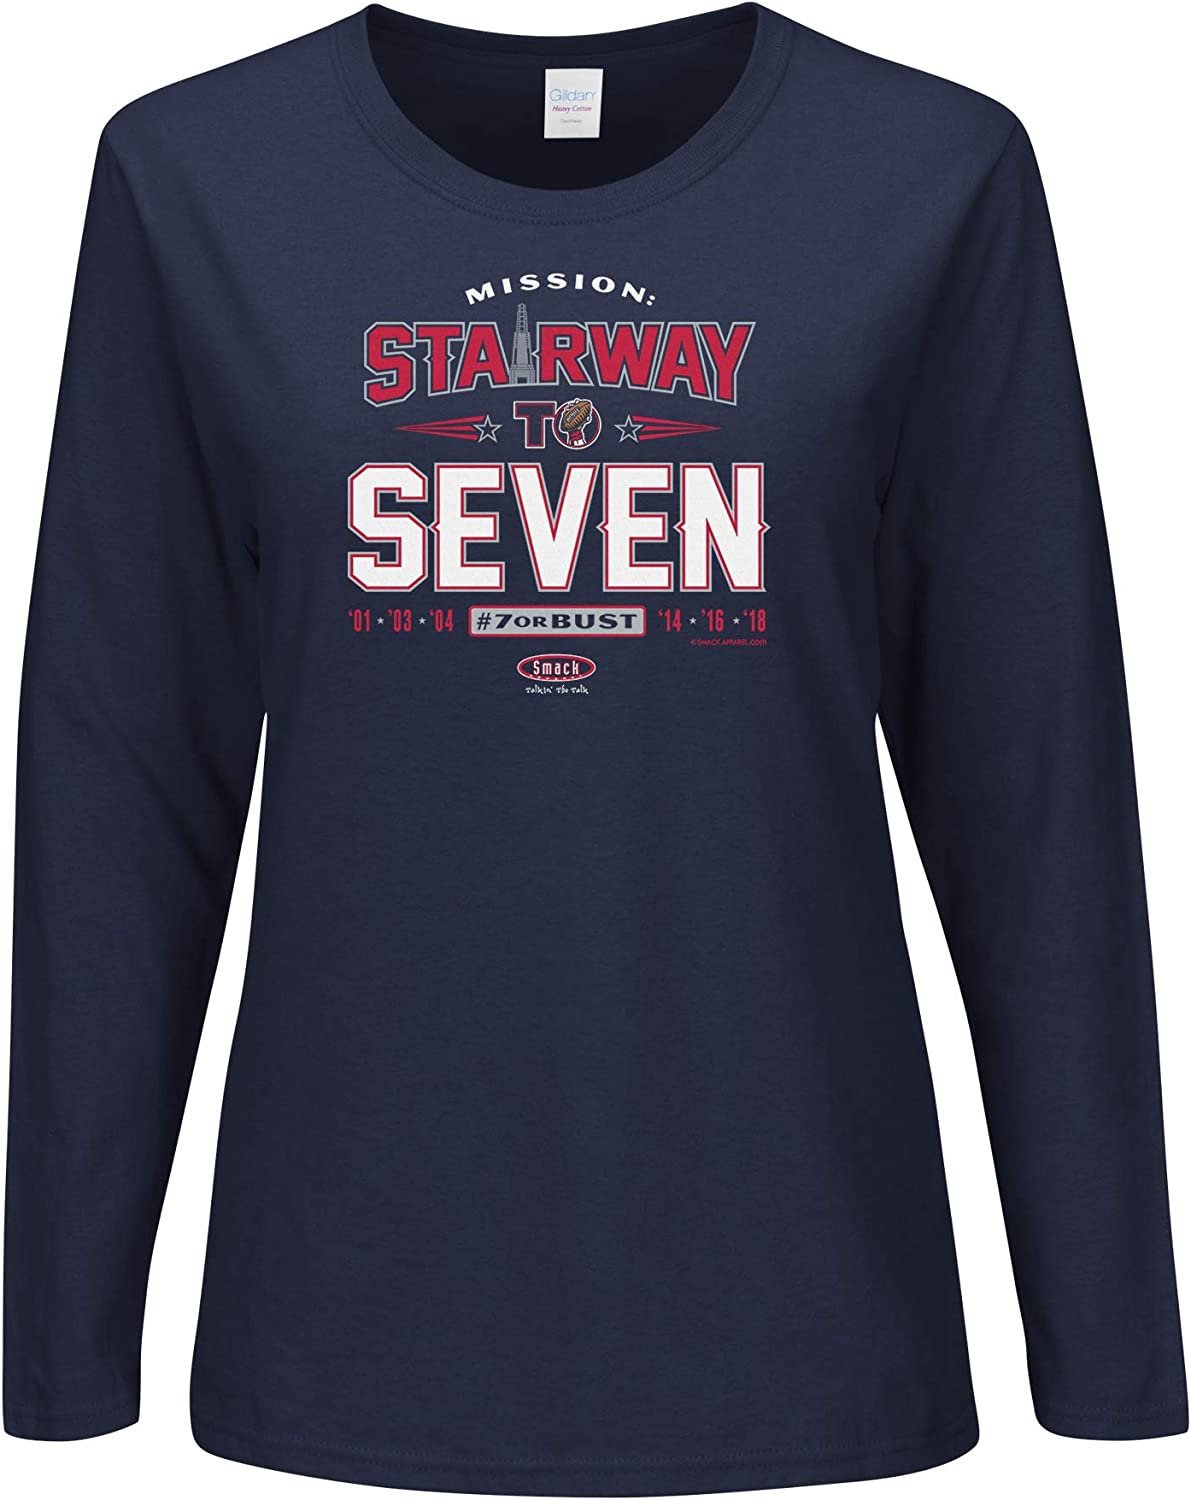 Navy Ladies T-Shirt Sm-2X Smack Apparel New England Football Fans Stairway to Seven